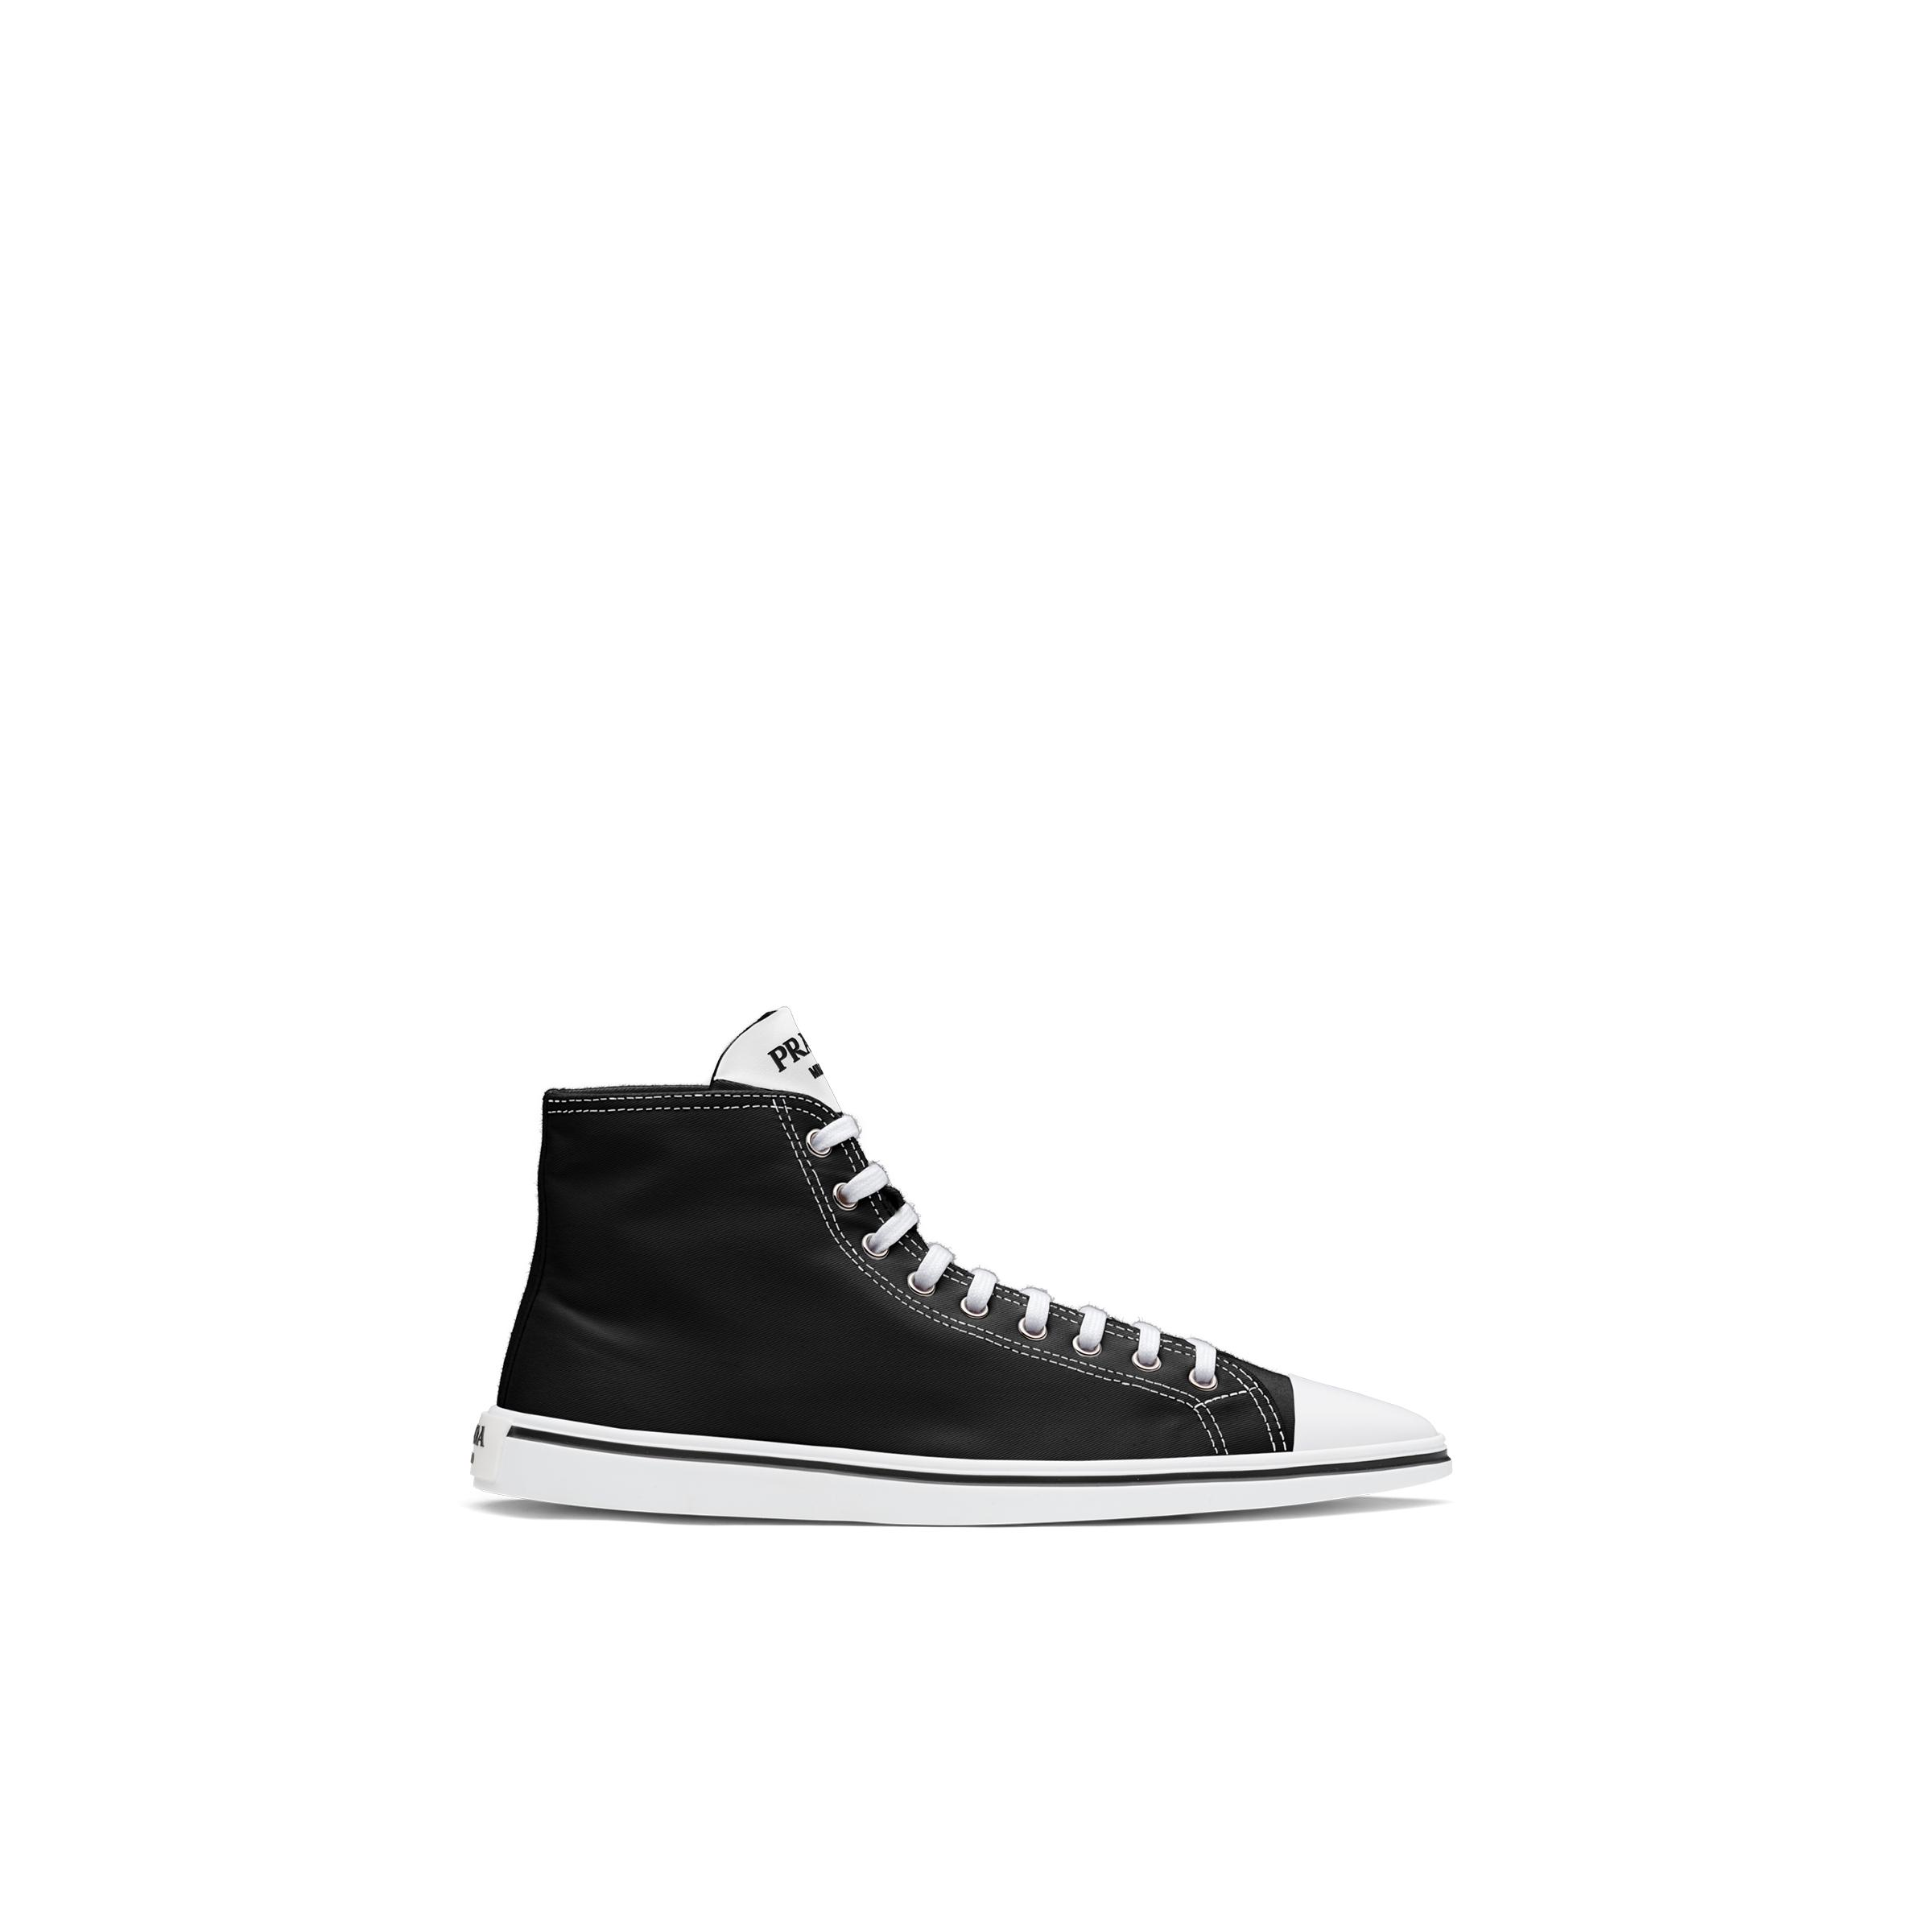 Synthesis High-top Sneakers Women Black 2